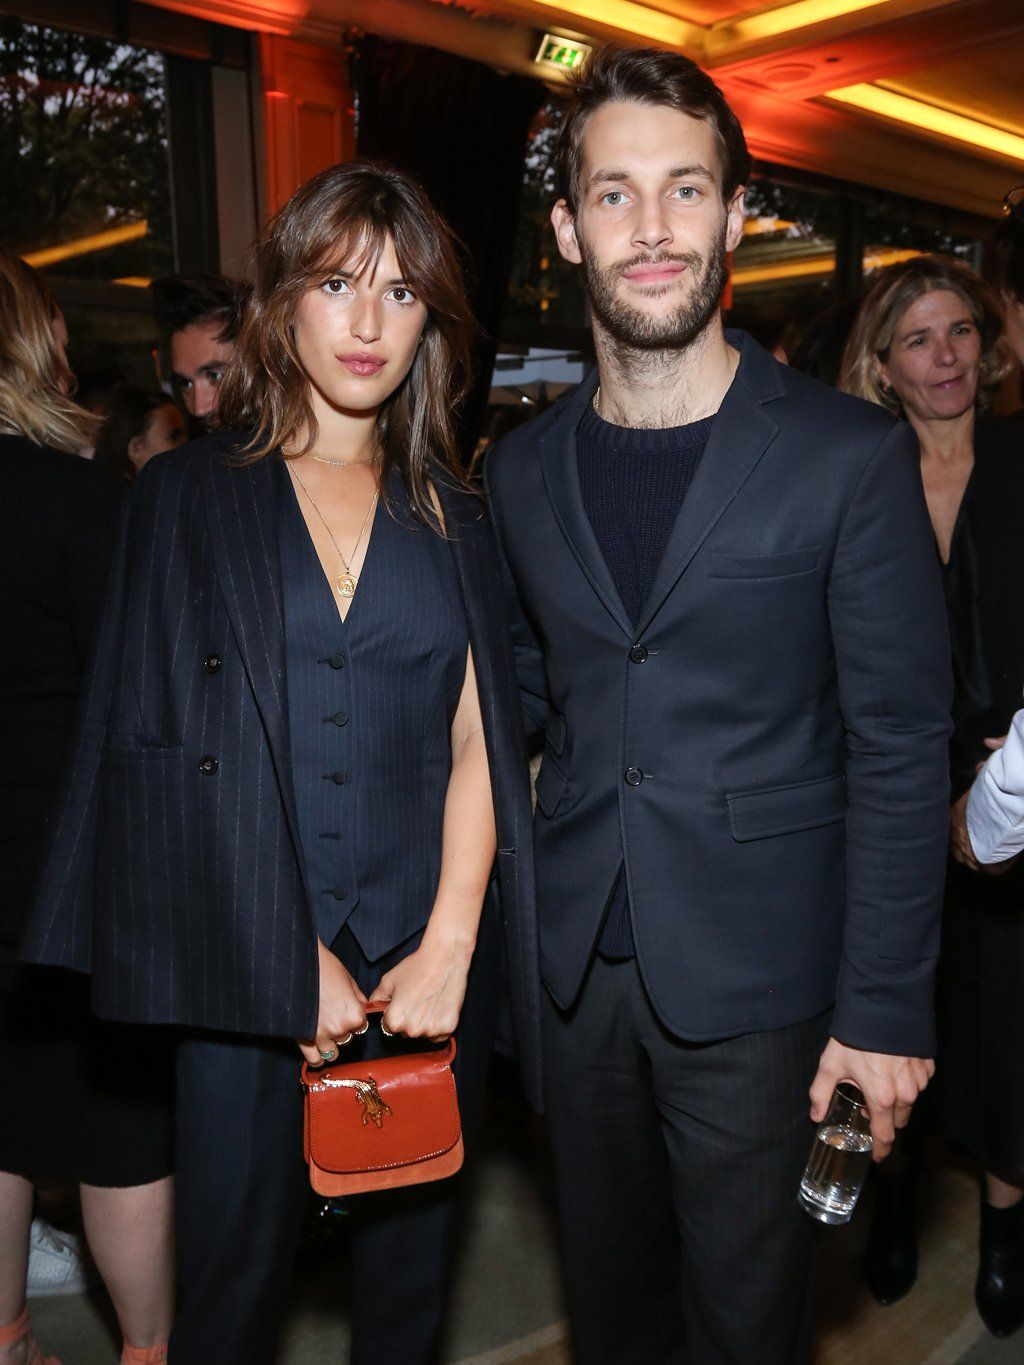 Vionnet s new flagship store and andam prize winners celebrations jeanne damas store and - Simon porte jacquemus instagram ...